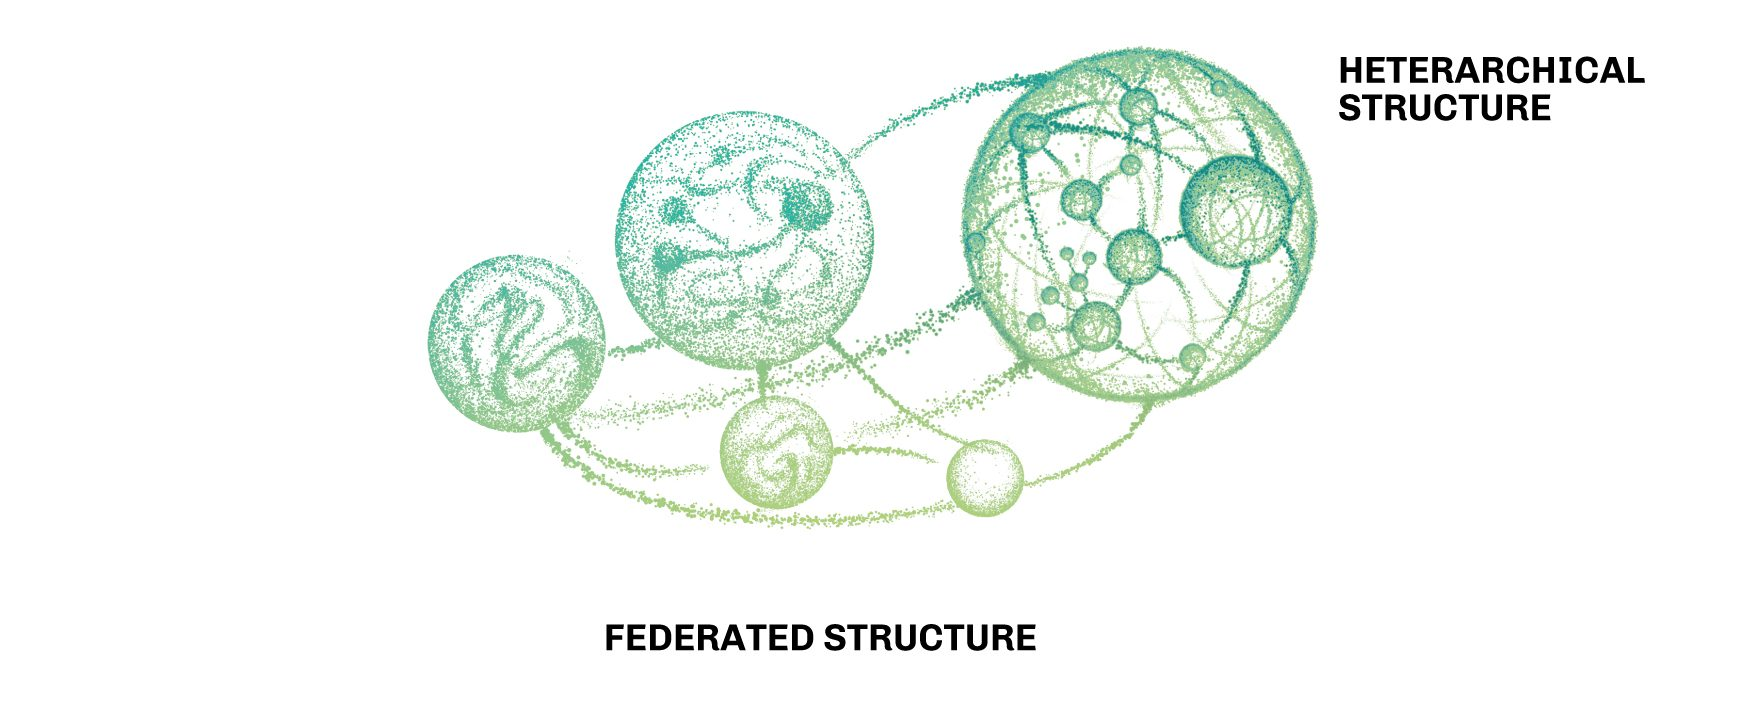 Heterarchical and federated structures